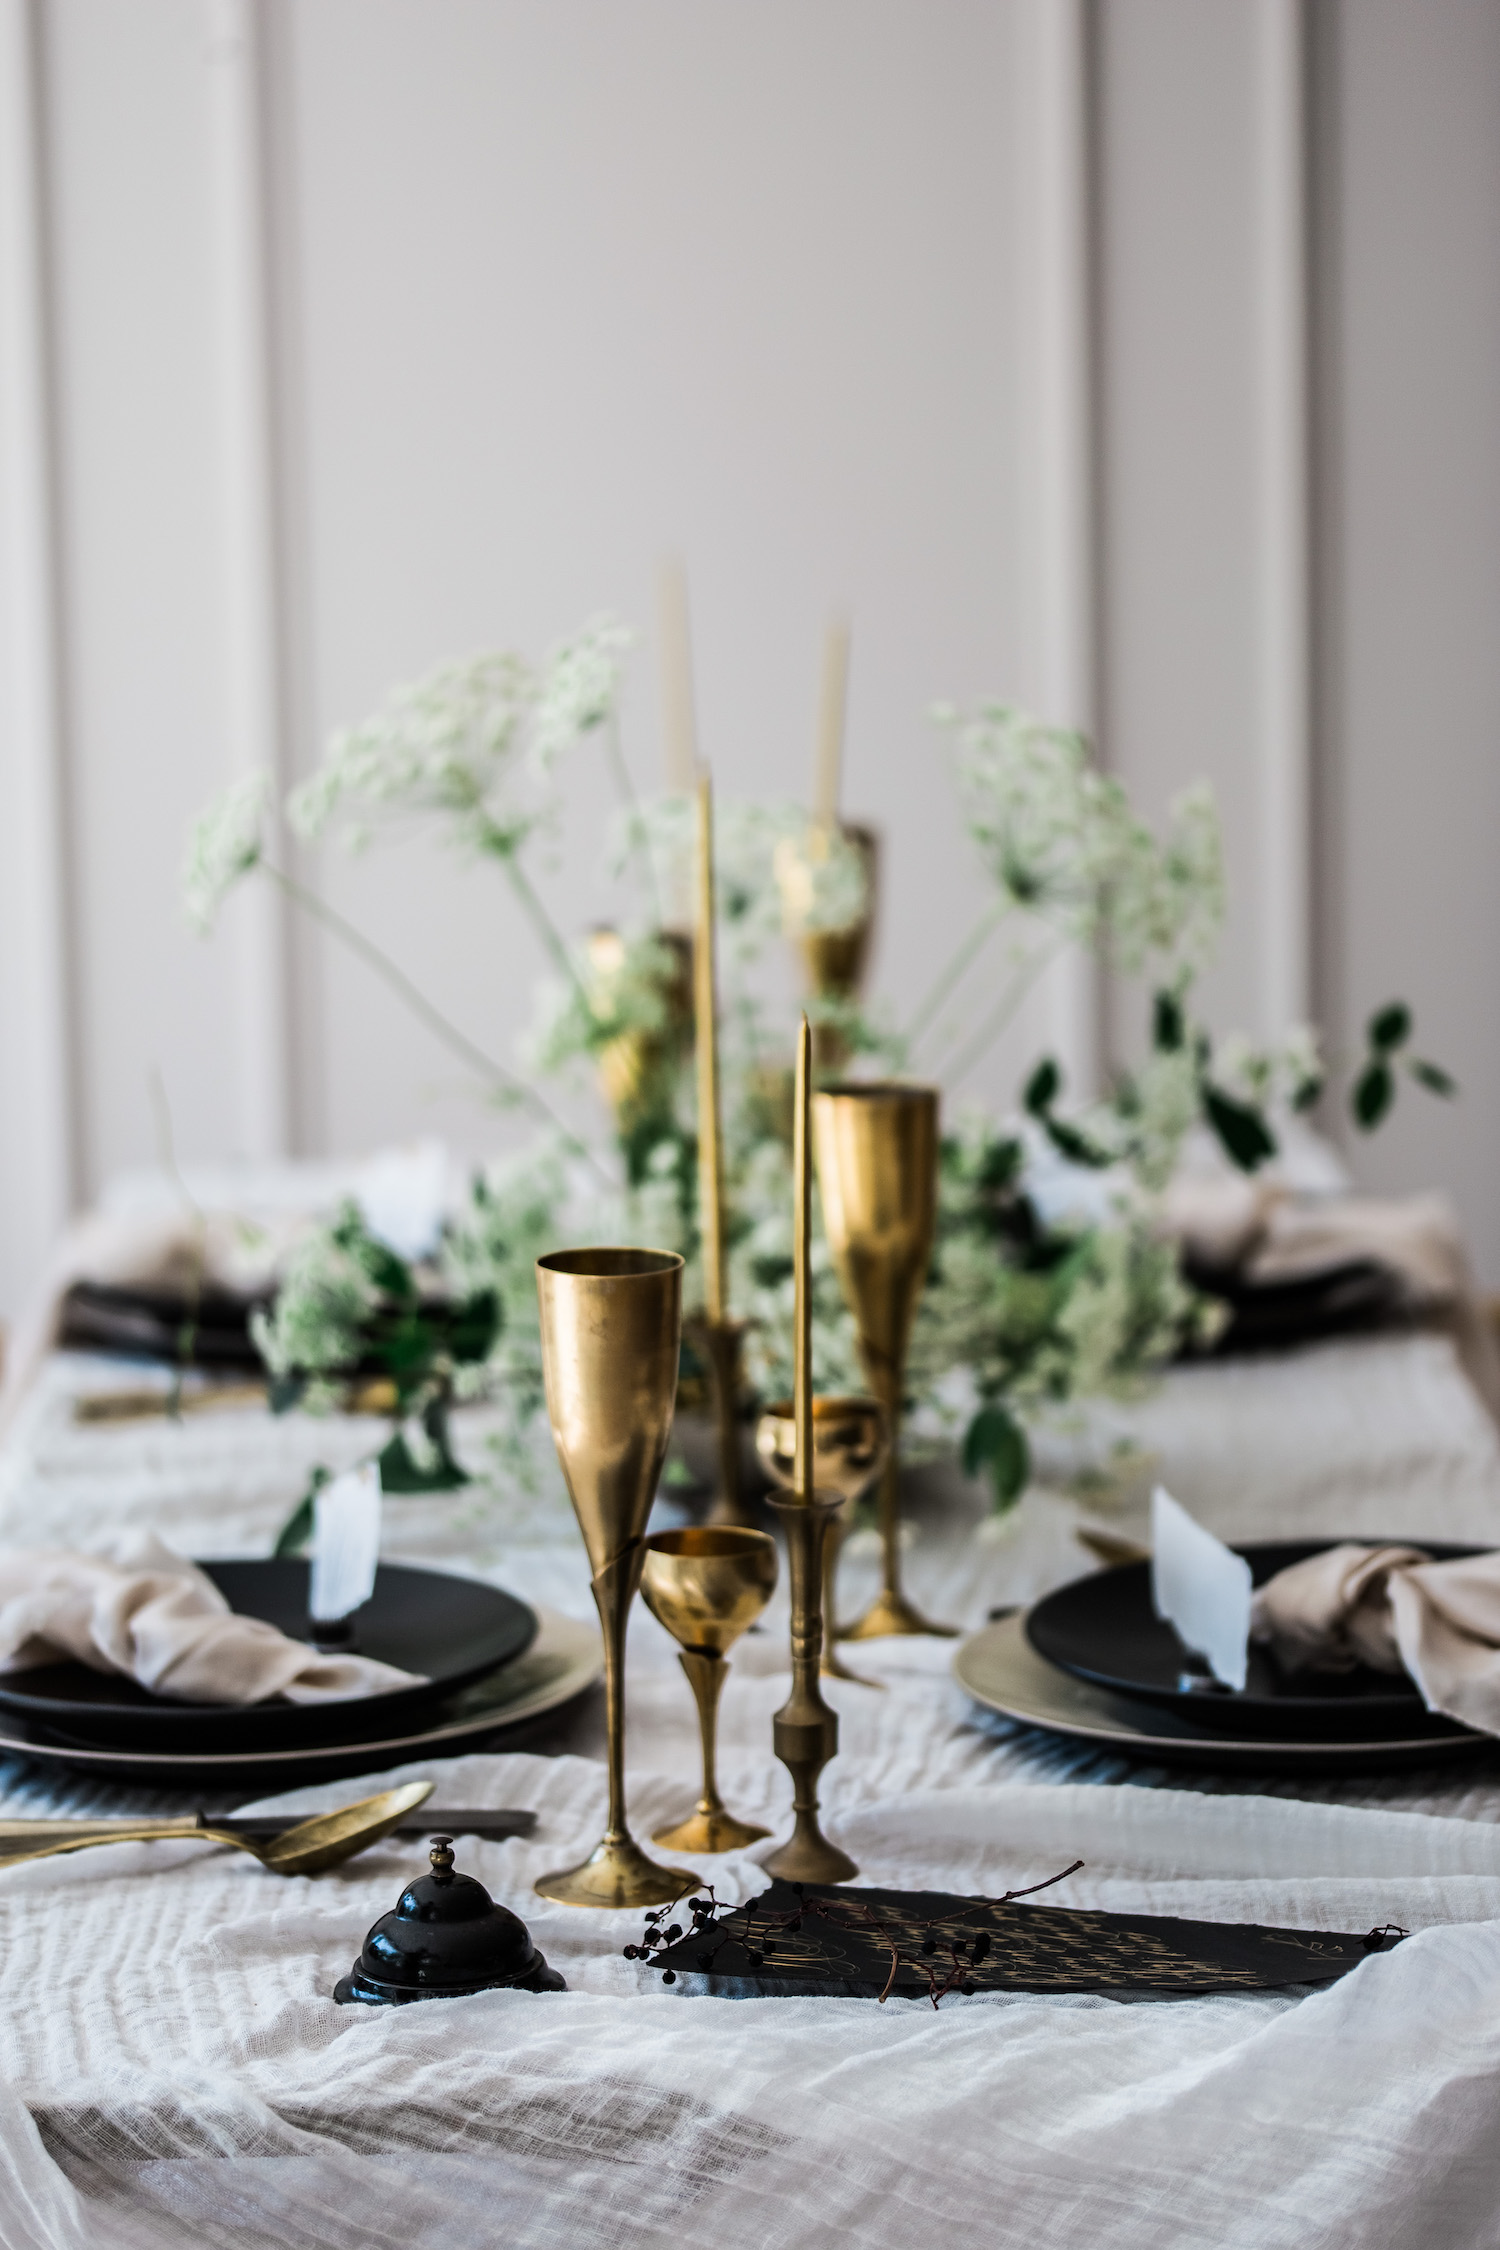 Table setting with place cards